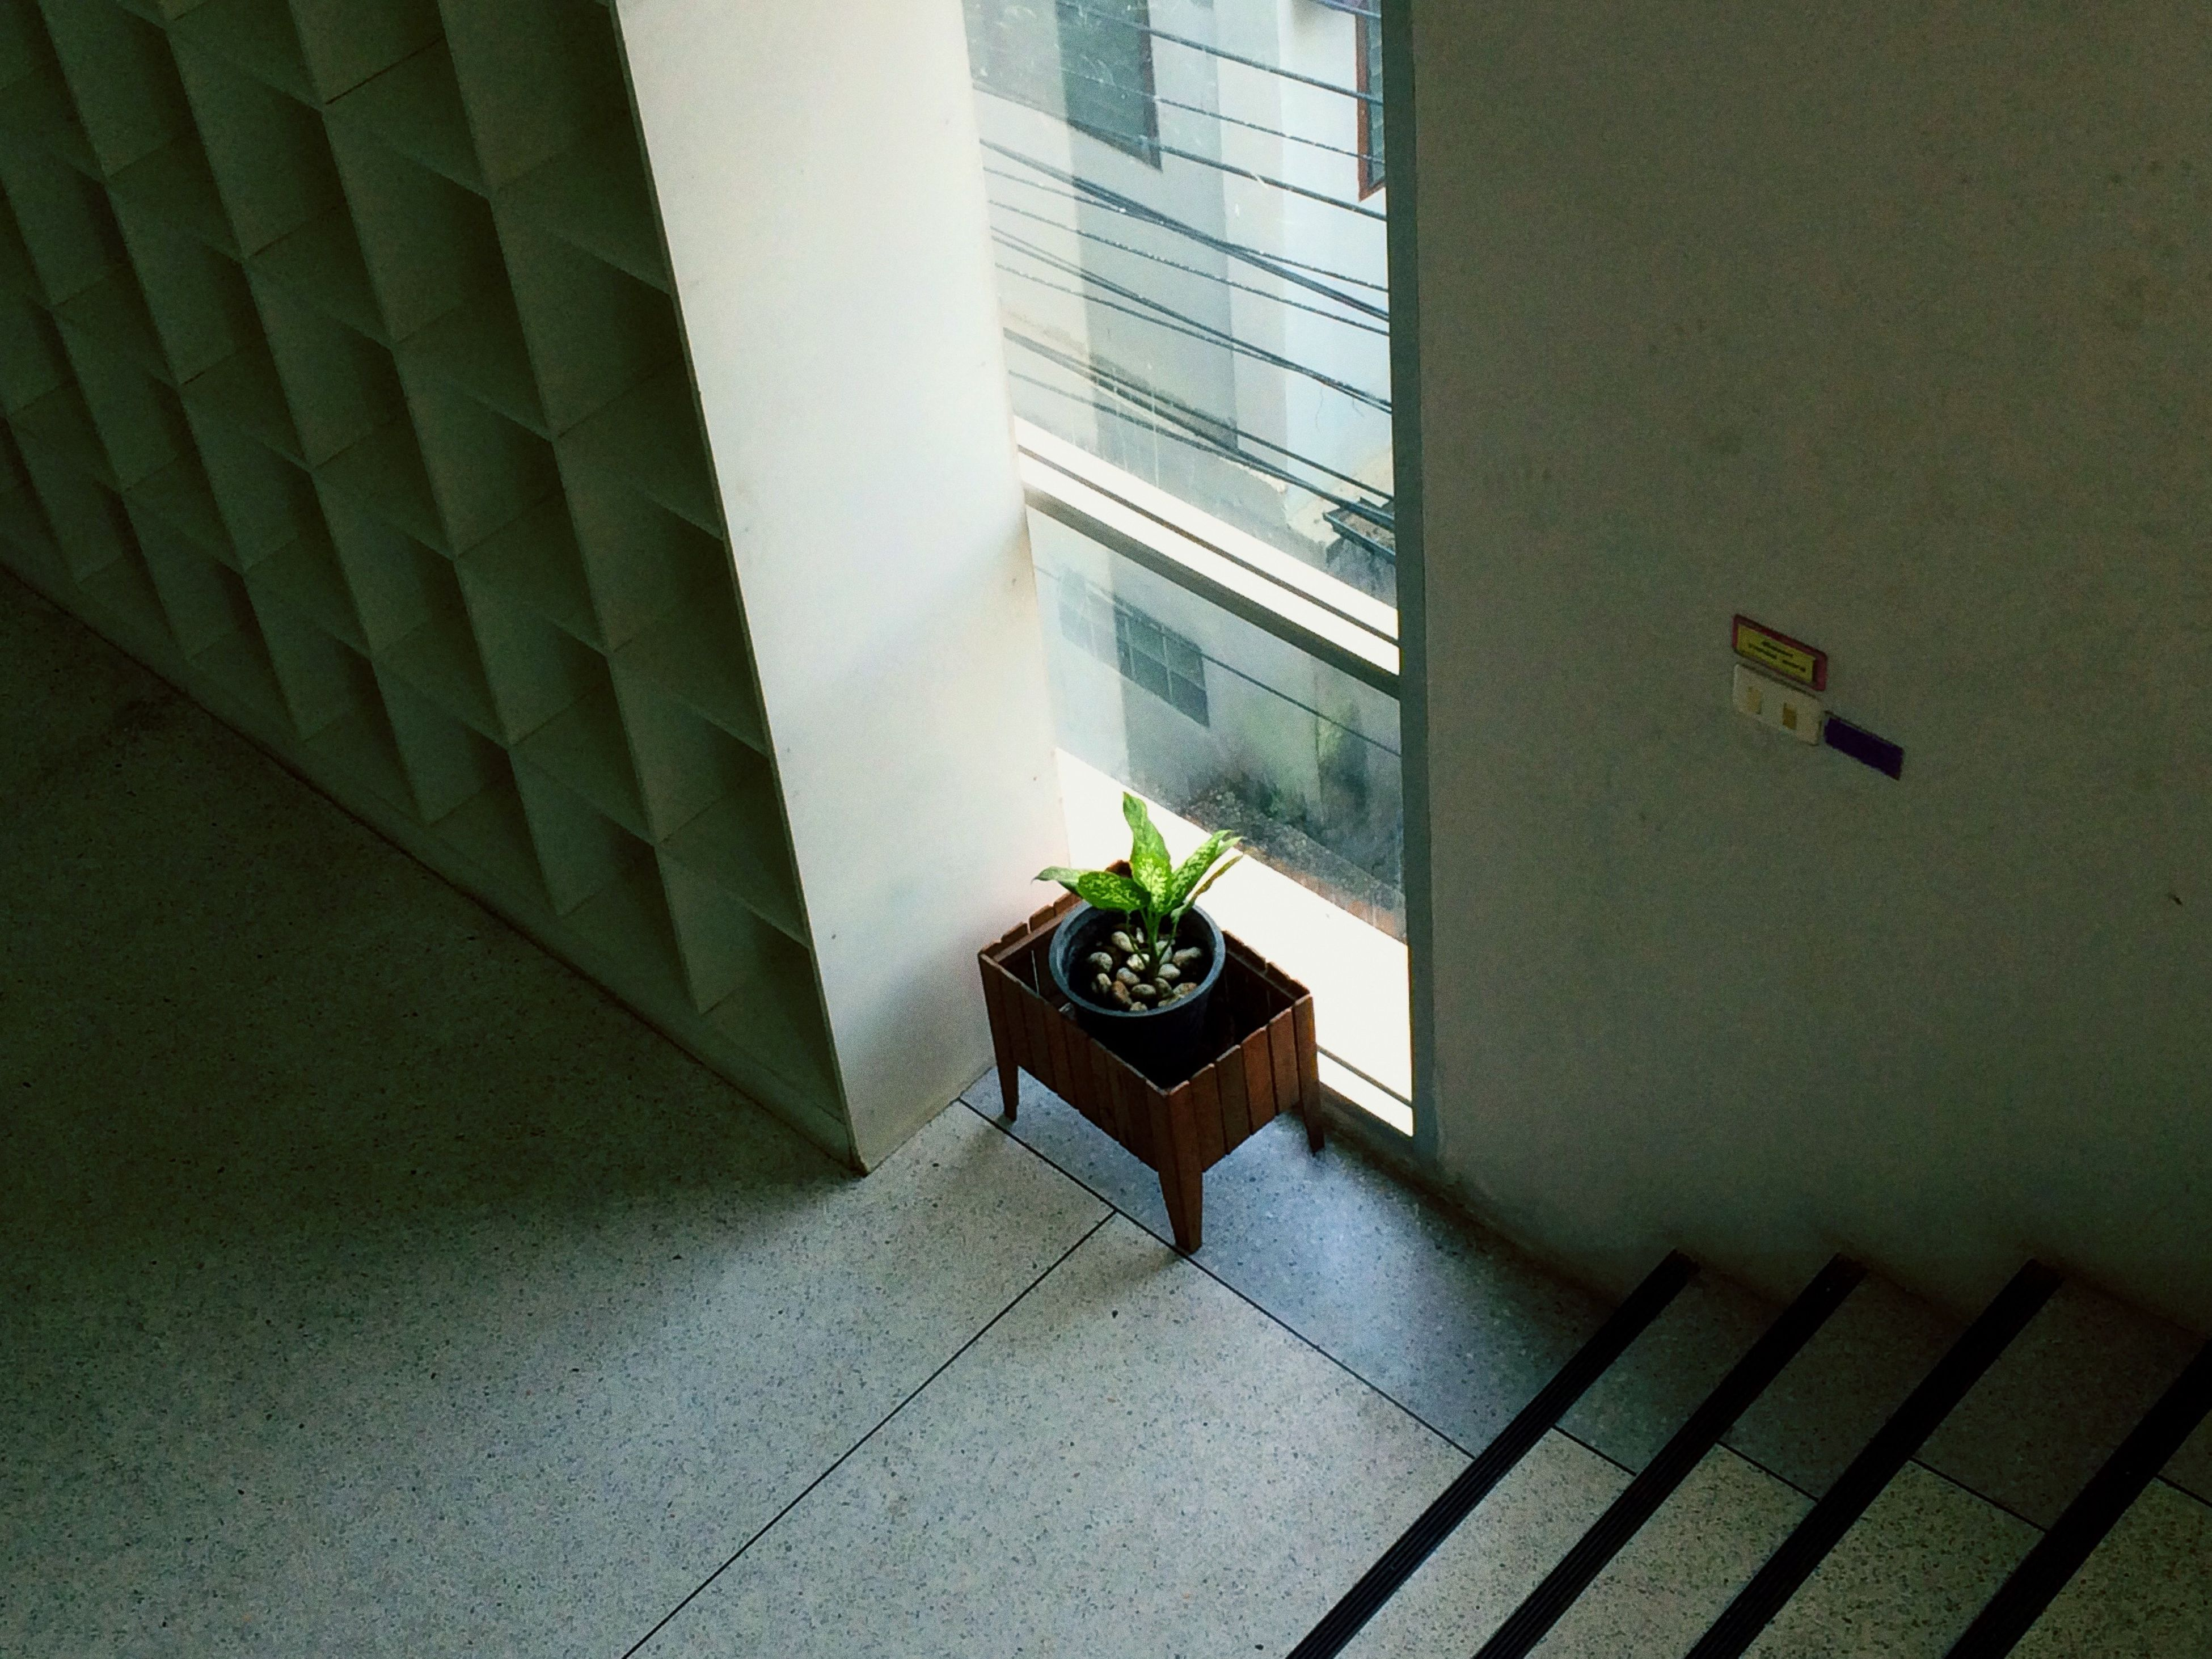 architecture, built structure, building exterior, potted plant, plant, window, leaf, wall - building feature, growth, indoors, wall, building, sunlight, tiled floor, green color, day, no people, house, shadow, flower pot